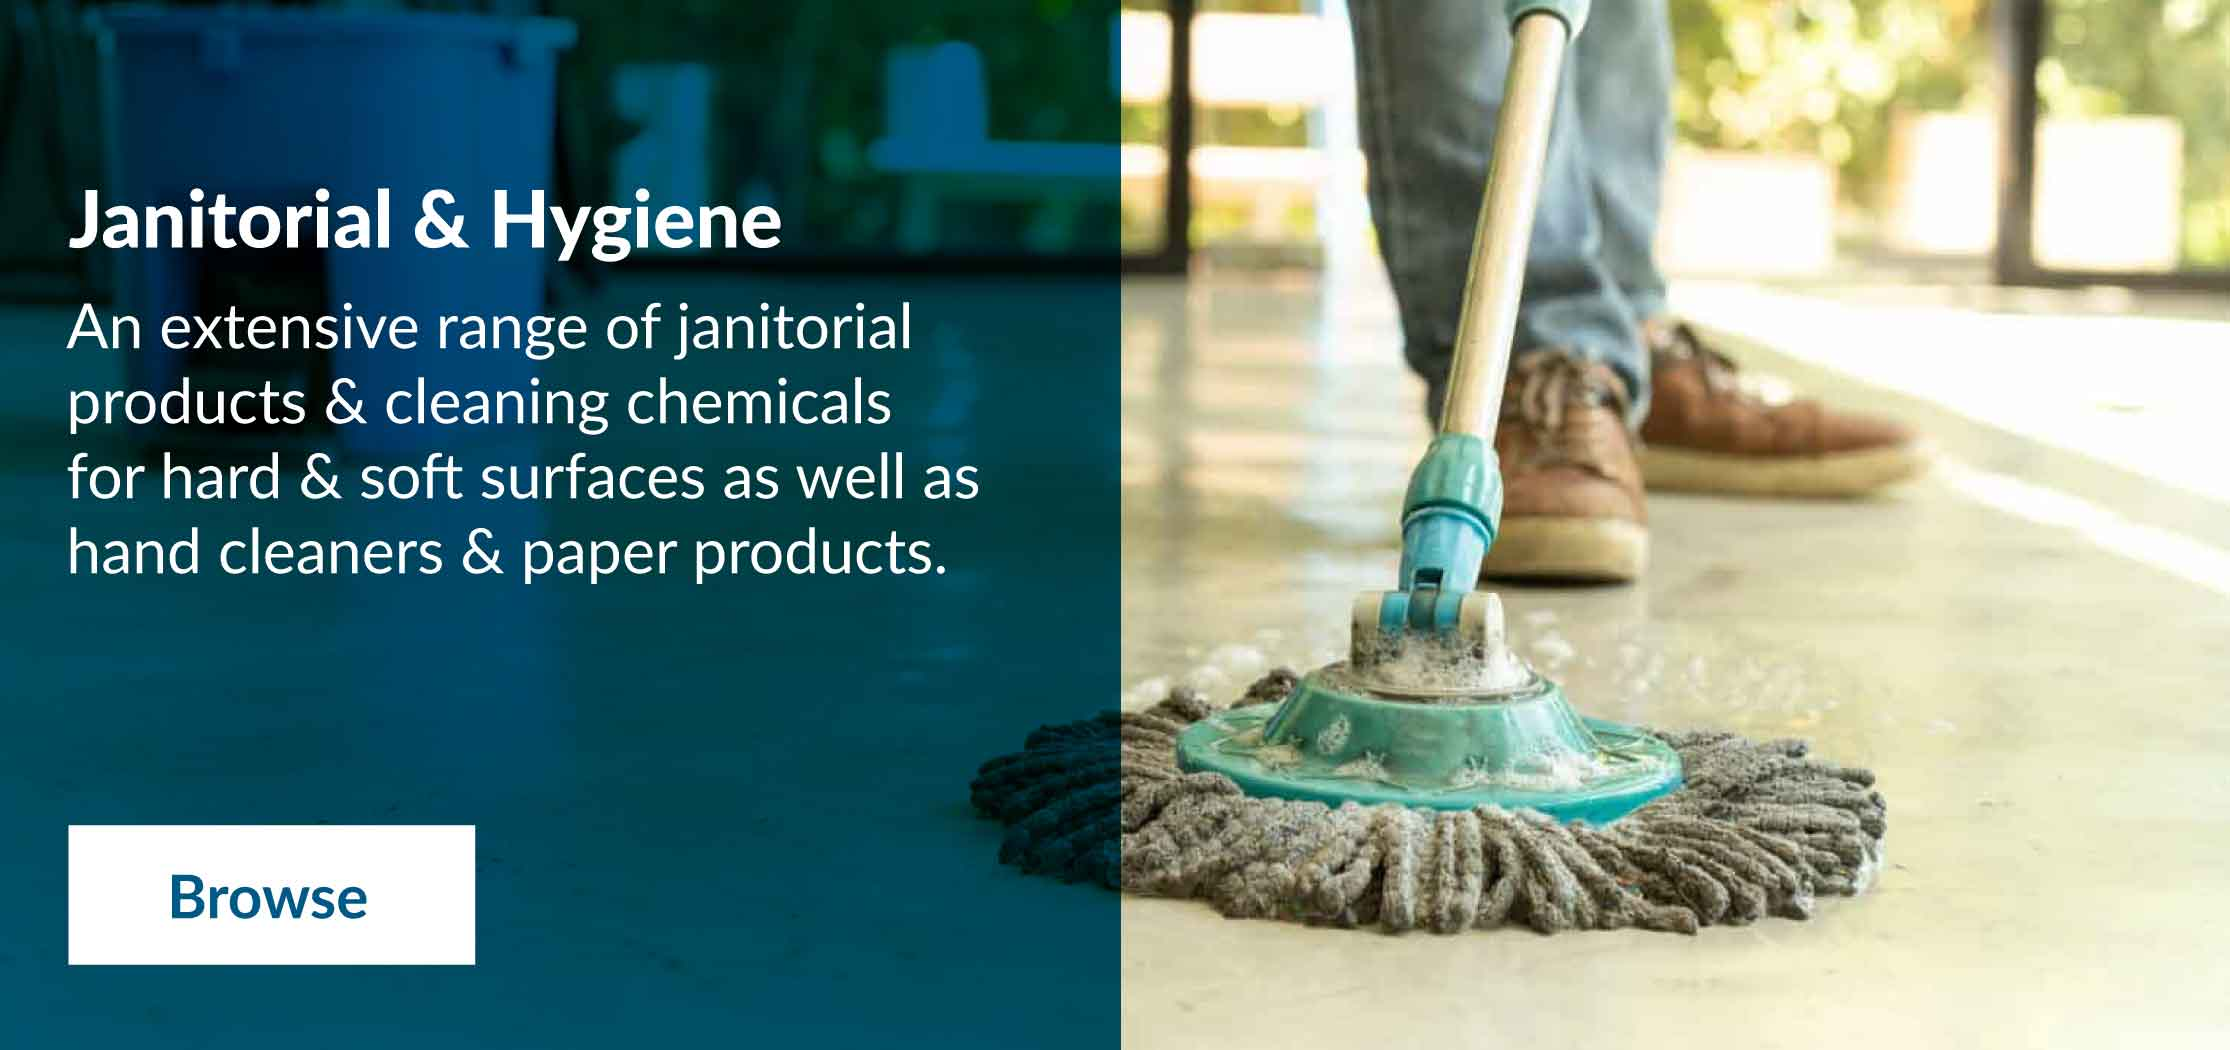 Shop janitorial & hygenic